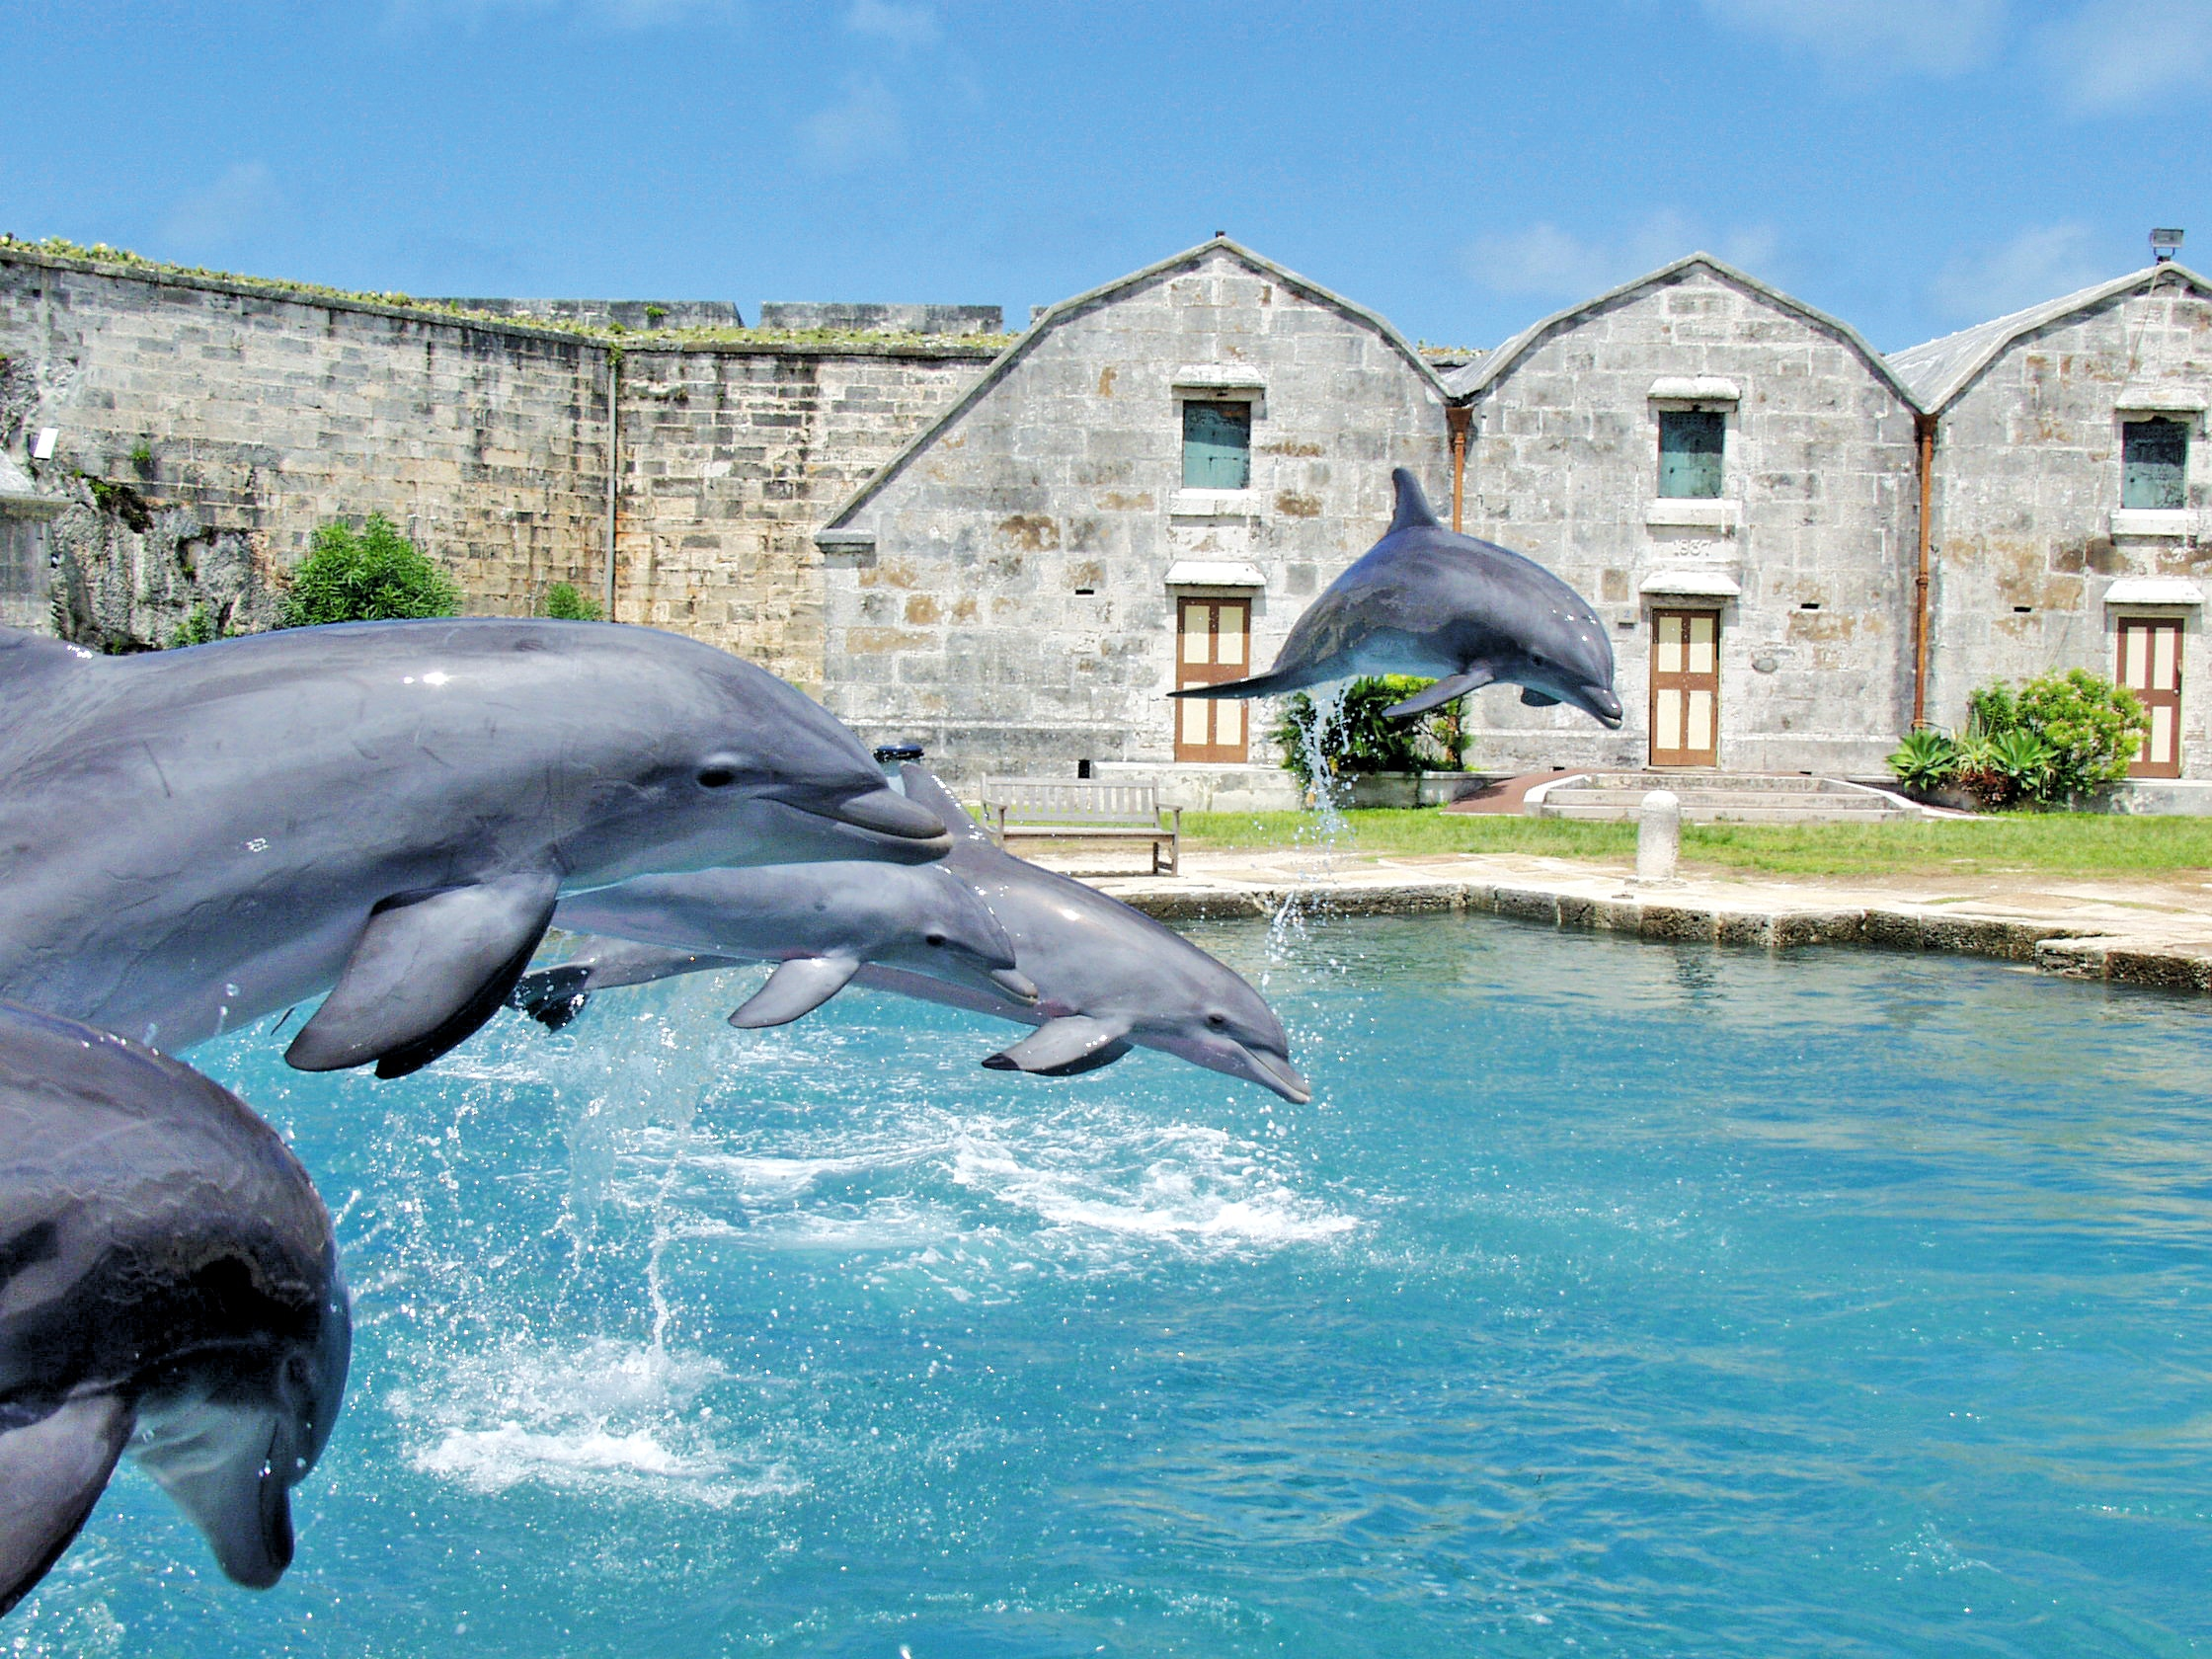 Dolphins jumping at Dolphin Quest Bermuda